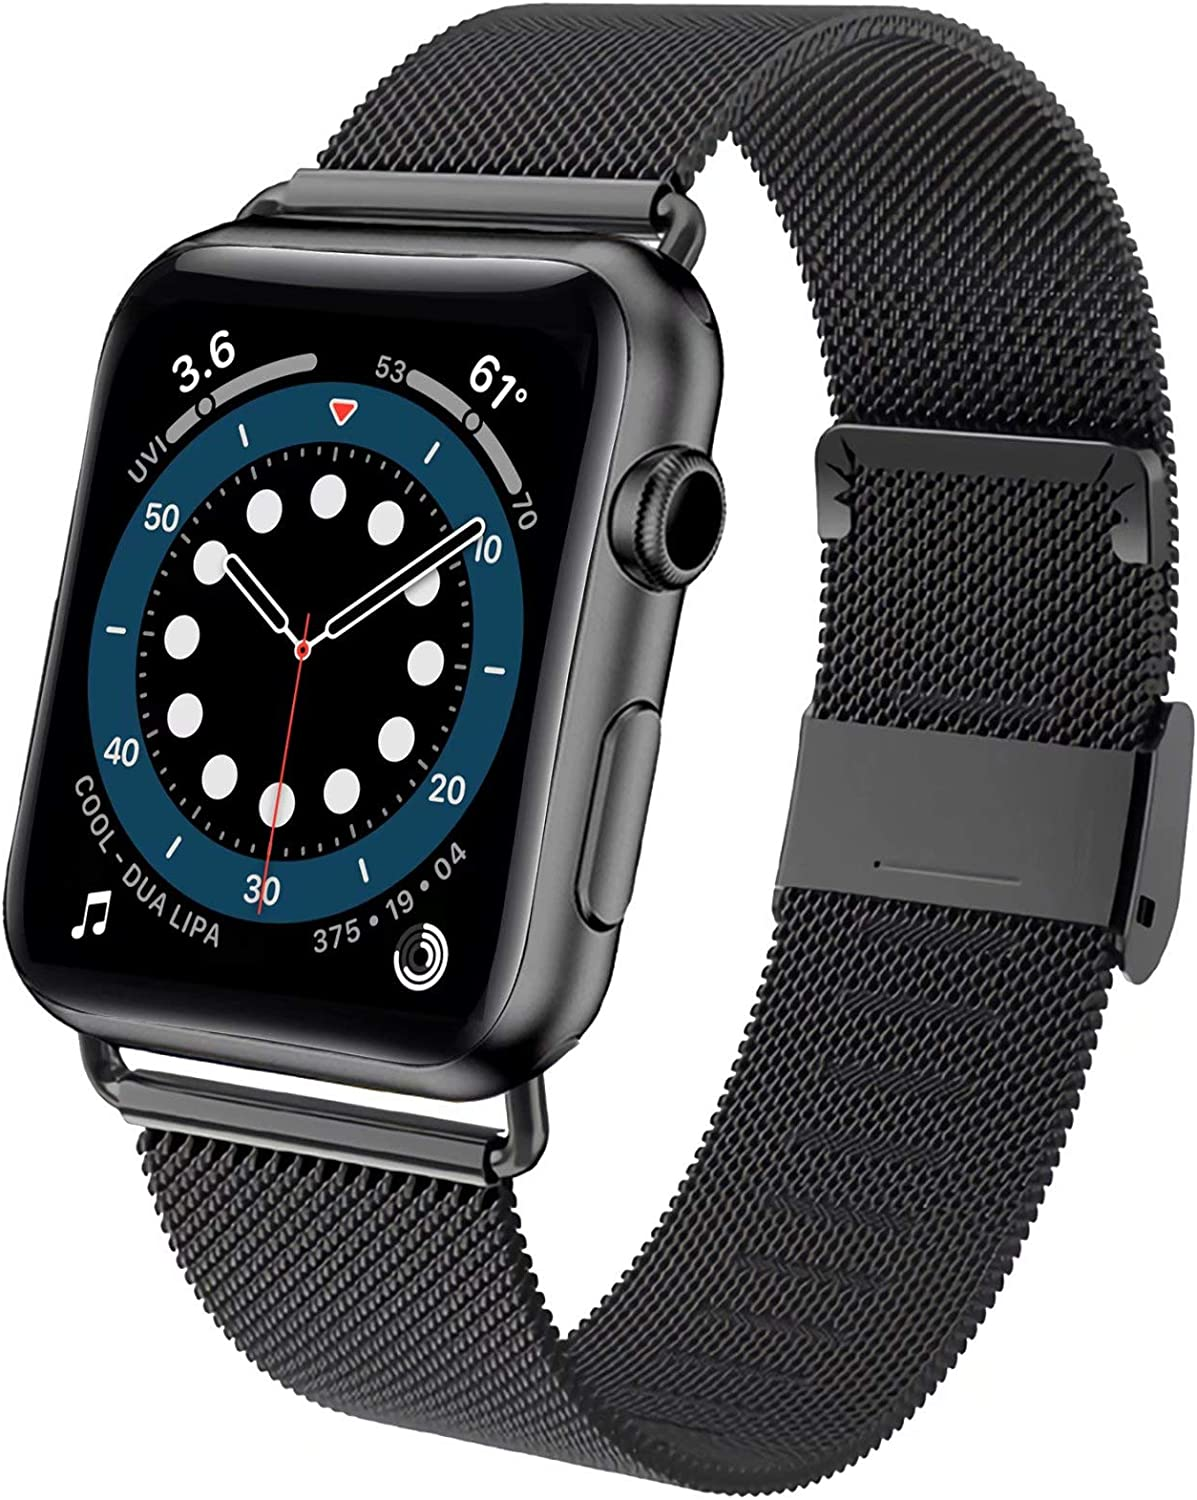 ADWLOF Compatible for Apple Watch Bands 42mm 44mm, Stainless Steel Mesh Magnetic Sport Wristband Loop Strap Replacement Band for iWatch Series 6/5/4/3/2/1/SE,Dark Black